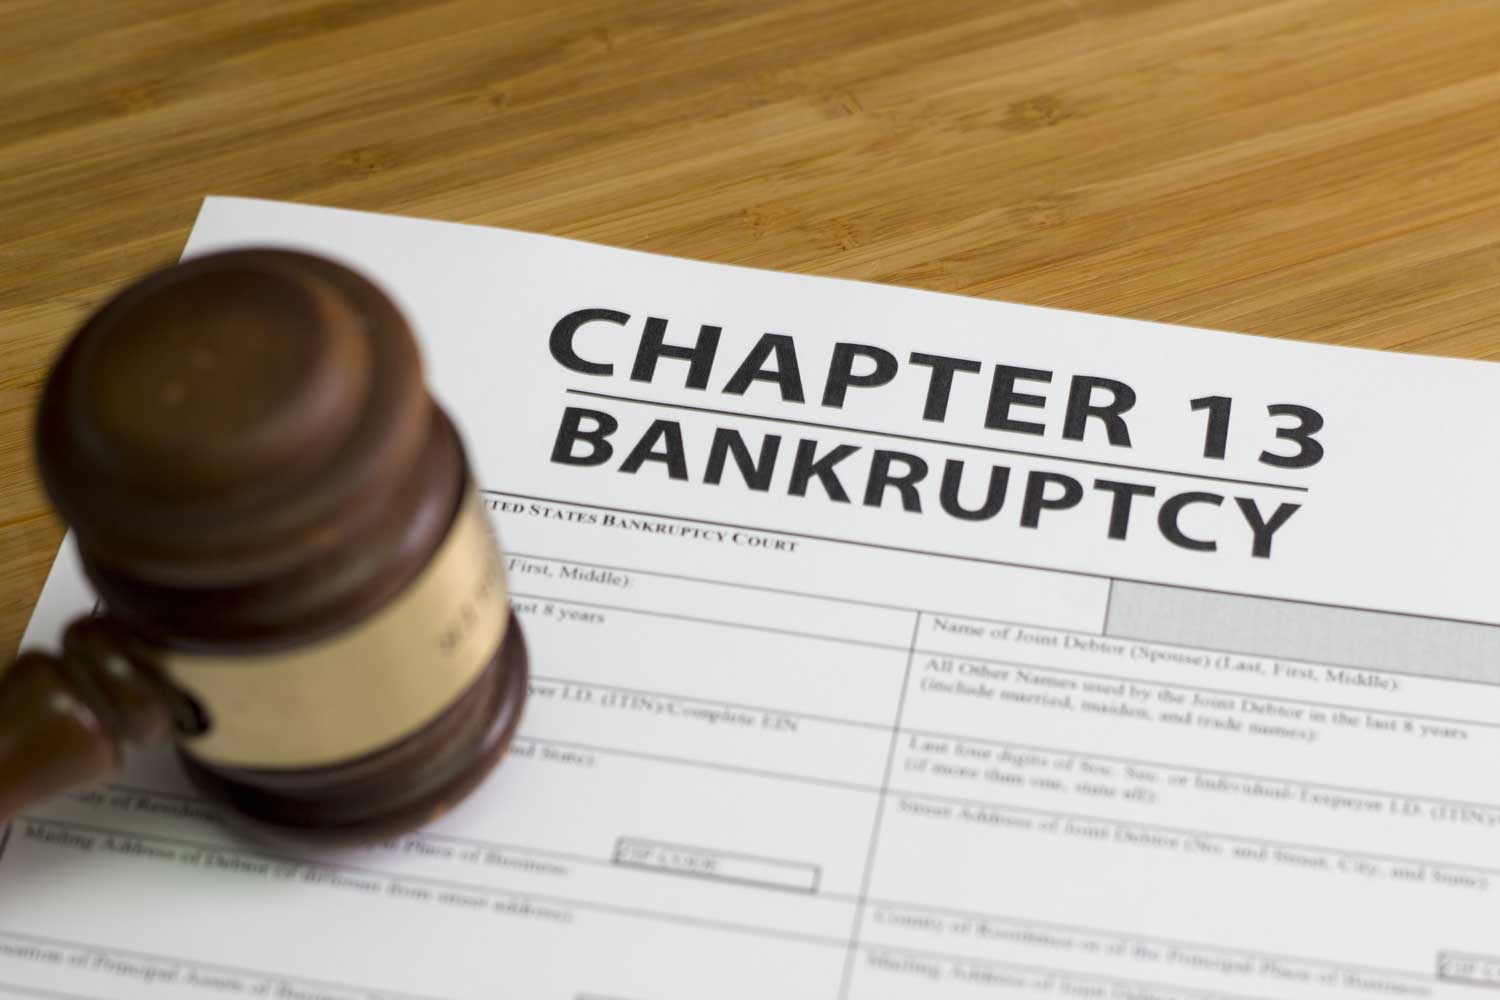 Bankruptcy Attorney Assists With a Chapter 13 Case